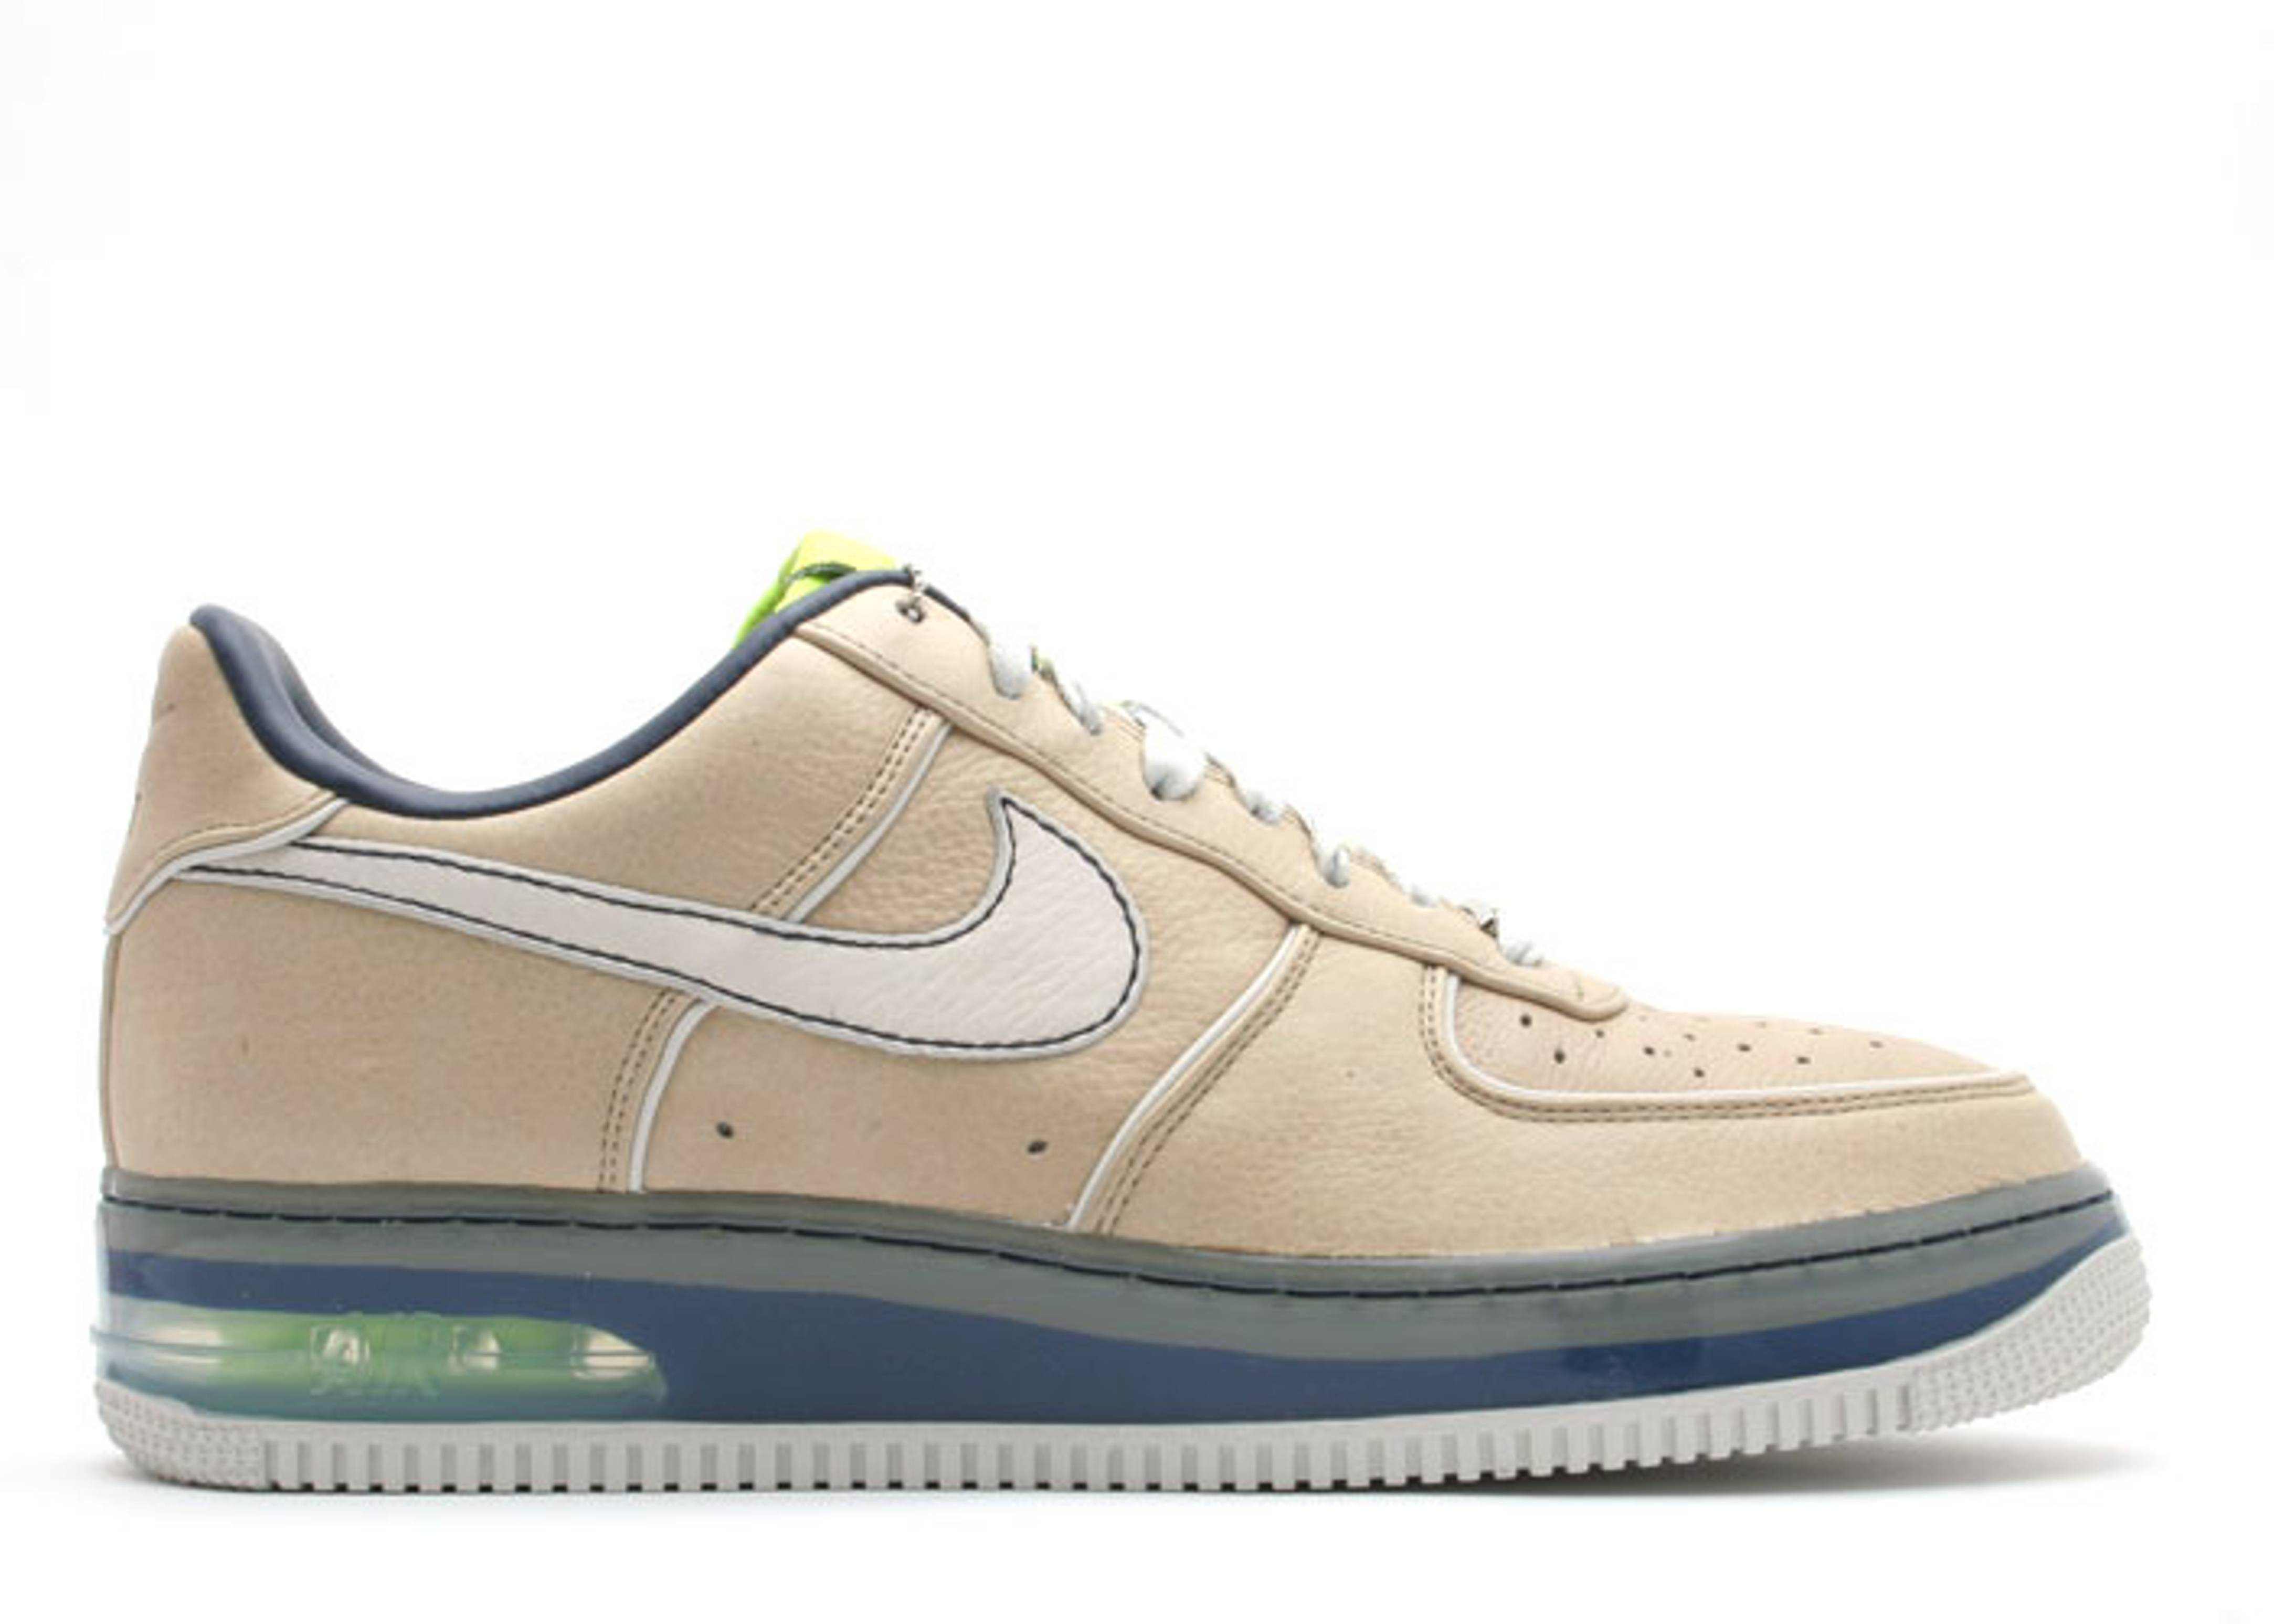 check out 5b16f 552d6 Air Force 1 Sprm Max Air 07 - Nike - 316666 201 - tweedlight bone-volt   Flight Club